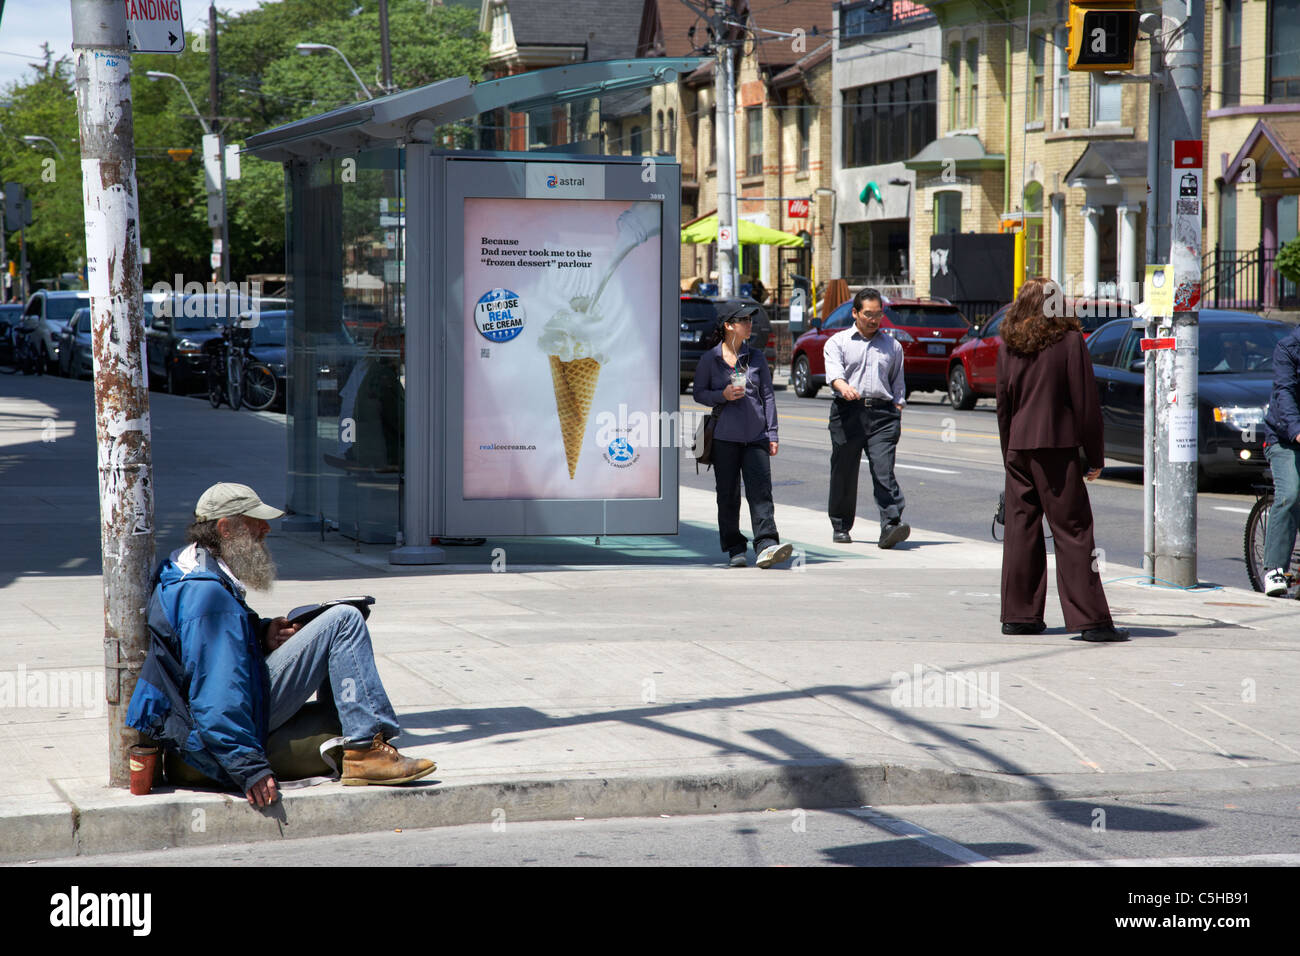 homeless man begging on the streets toronto ontario canada - Stock Image